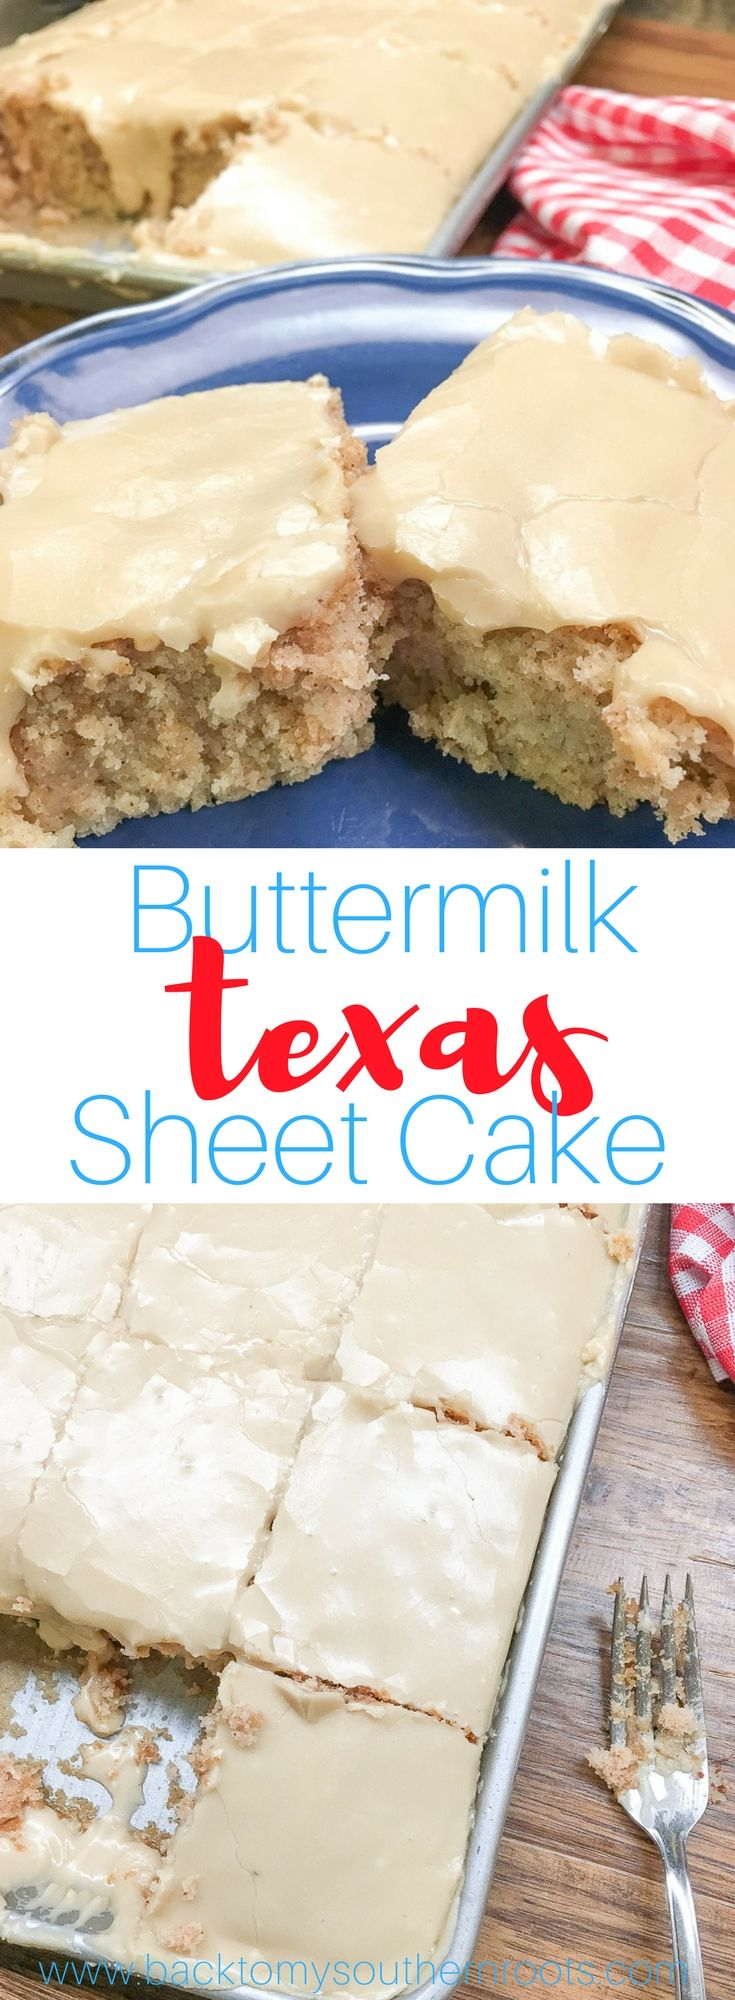 Buttermilk Texas Sheet Cake with vanilla is a delicious dessert to make for a birthday party, church potluck, or any holiday. The rich frosting is perfect with the cinnamon and vanilla flavoring. You are going to love this recipe. #buttermilk #texassheetcake #sheetcake #vanilla #dessert #desserts #cake